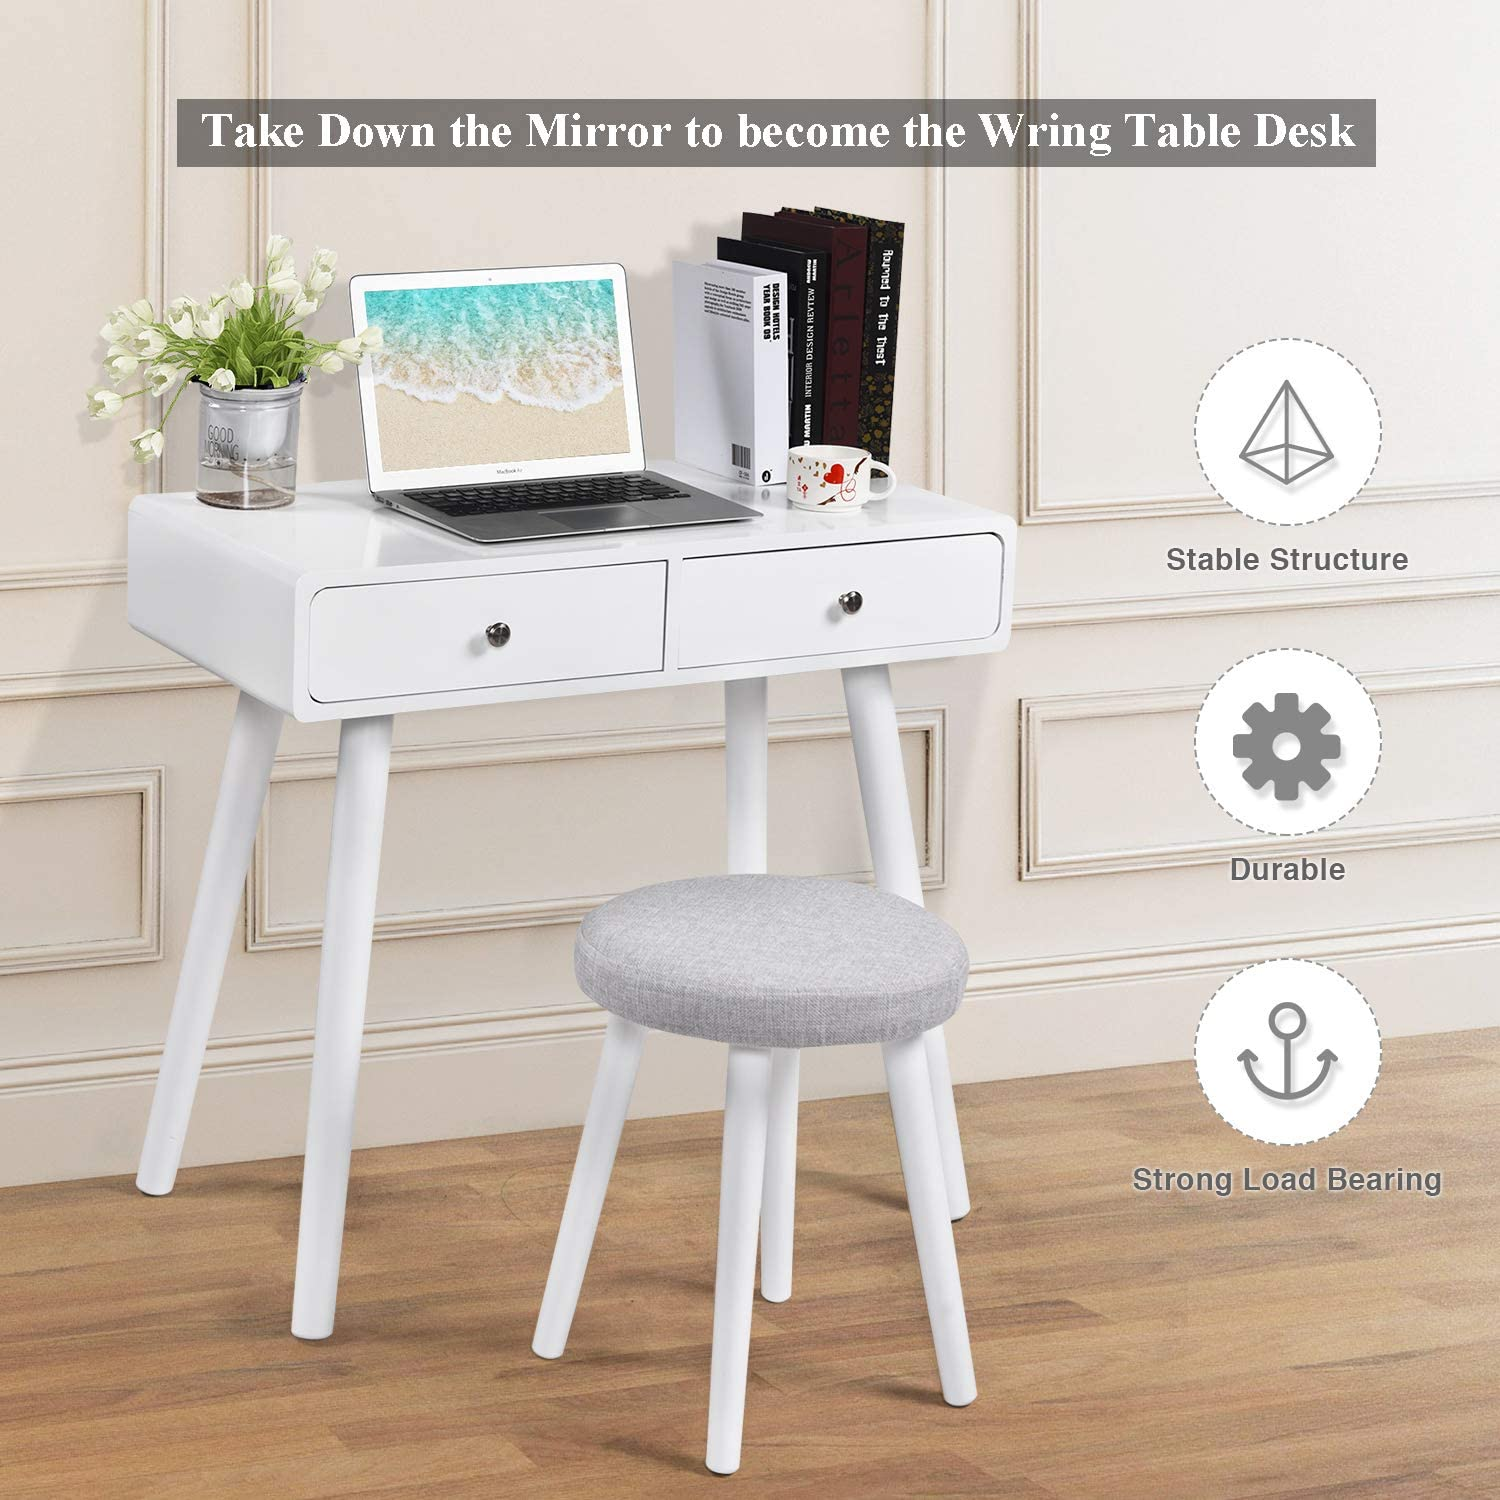 Makeup Vanity Table Set with Drawers and Mirror Bedroom Makeup Dressing Table with Cushioned Stool White Vanity Desk with 2 Large Drawers for Girl Women